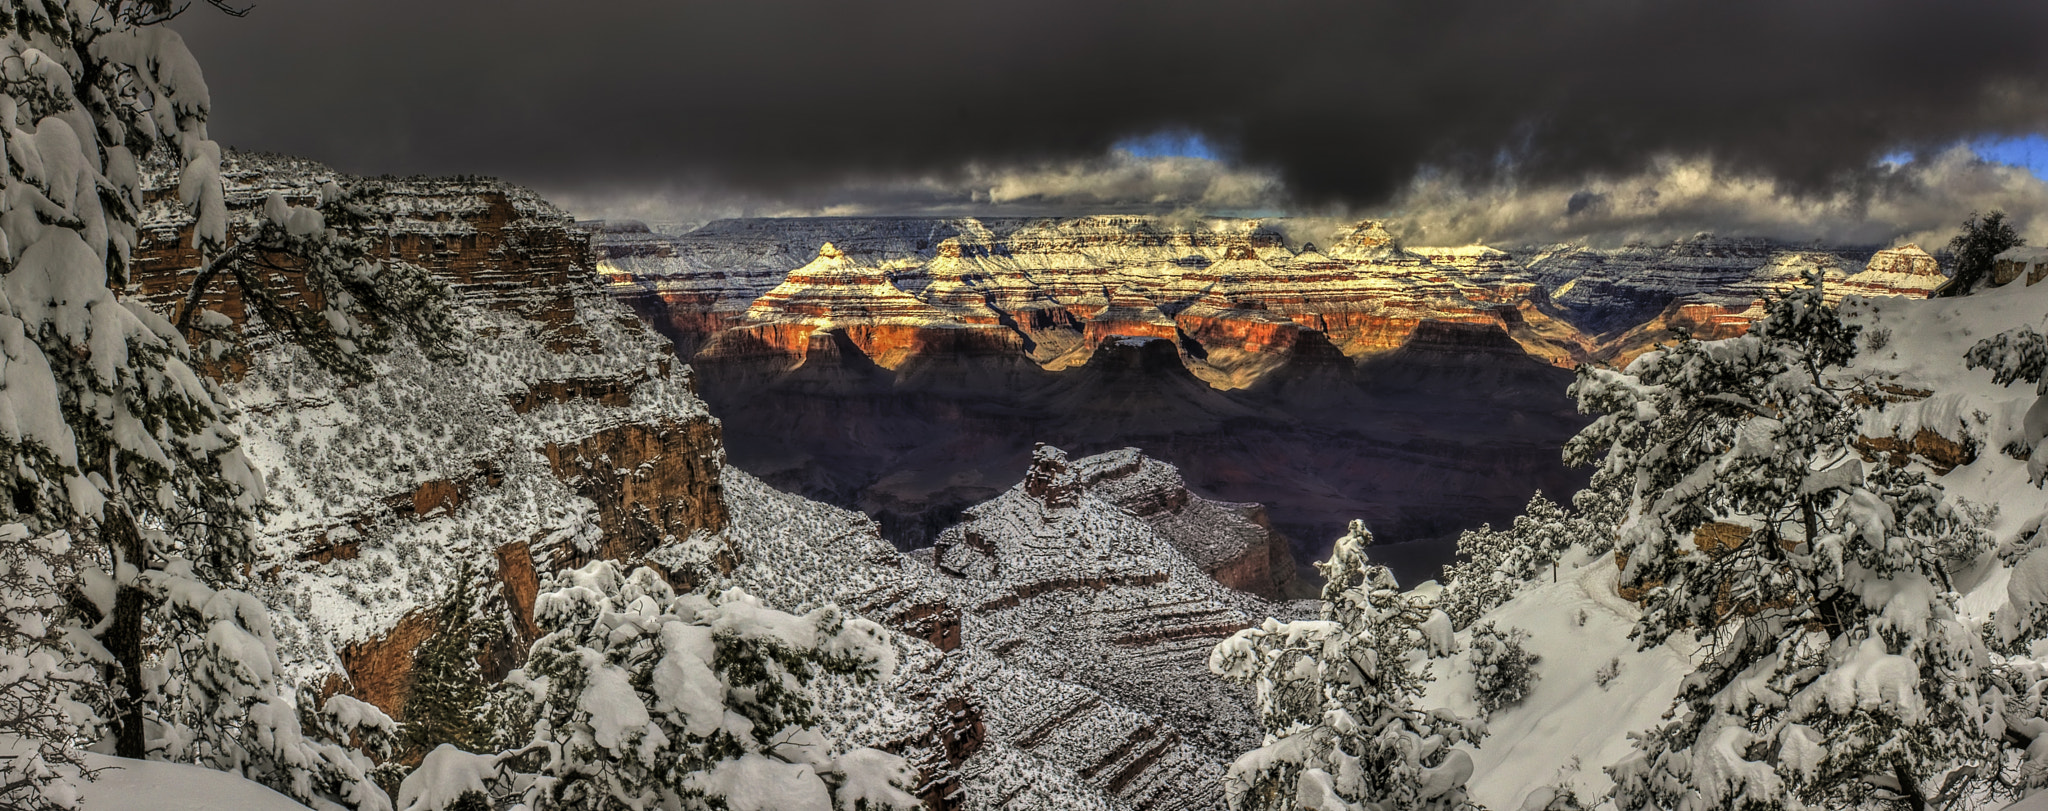 Photograph Wonderland by Danilo Faria on 500px